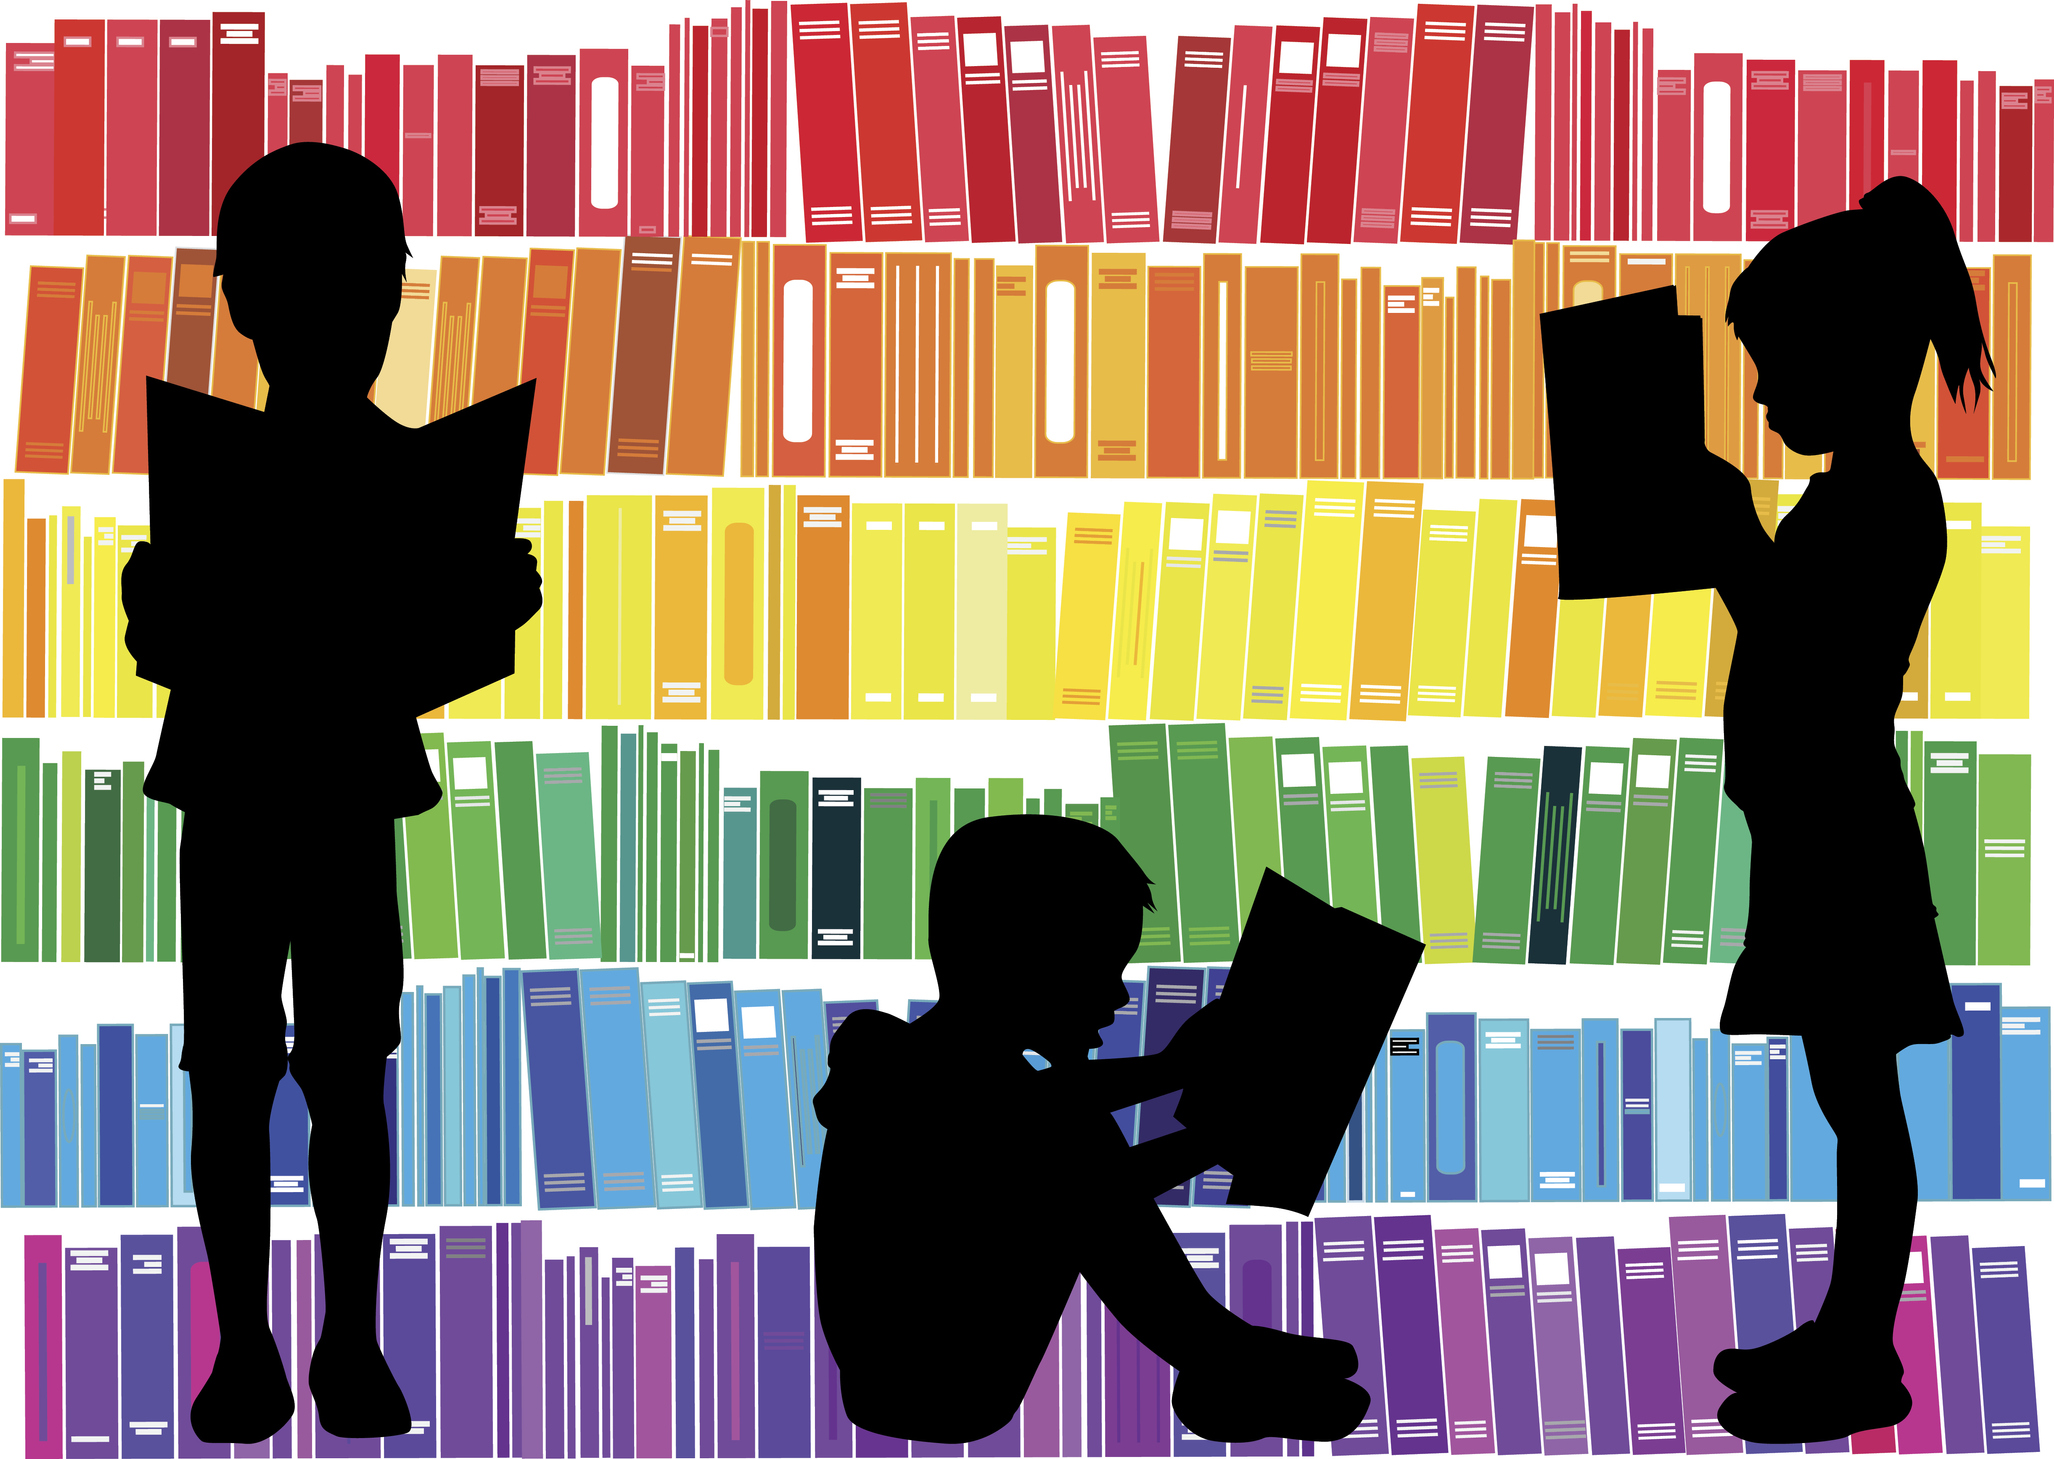 books arranged in rows monochromatically: red, orange, yellow, green, blue, purple, with silhouettes of three children reading books. two standing up and one sitting